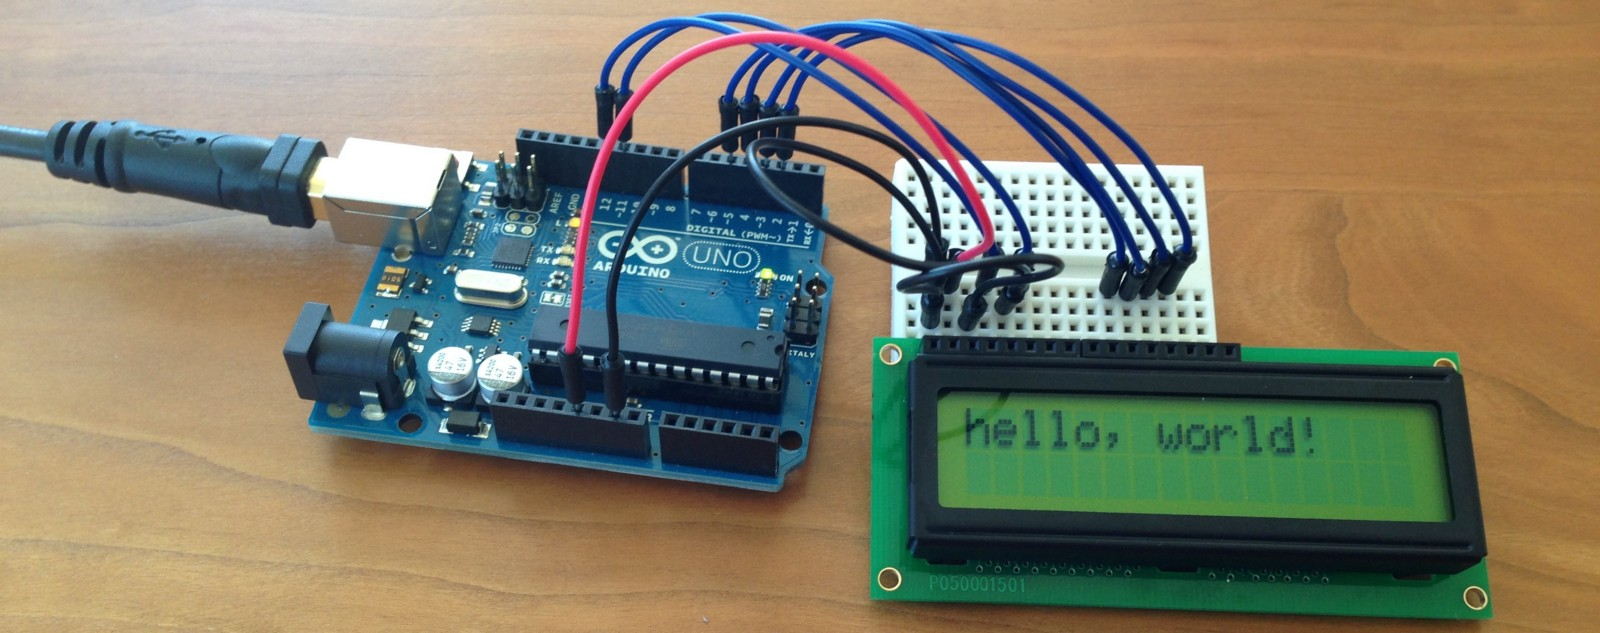 Arduino Code3100 Medium Degree Electronics Forum Circuits Projects And Microcontrollers Why Should It Be Included For This Project